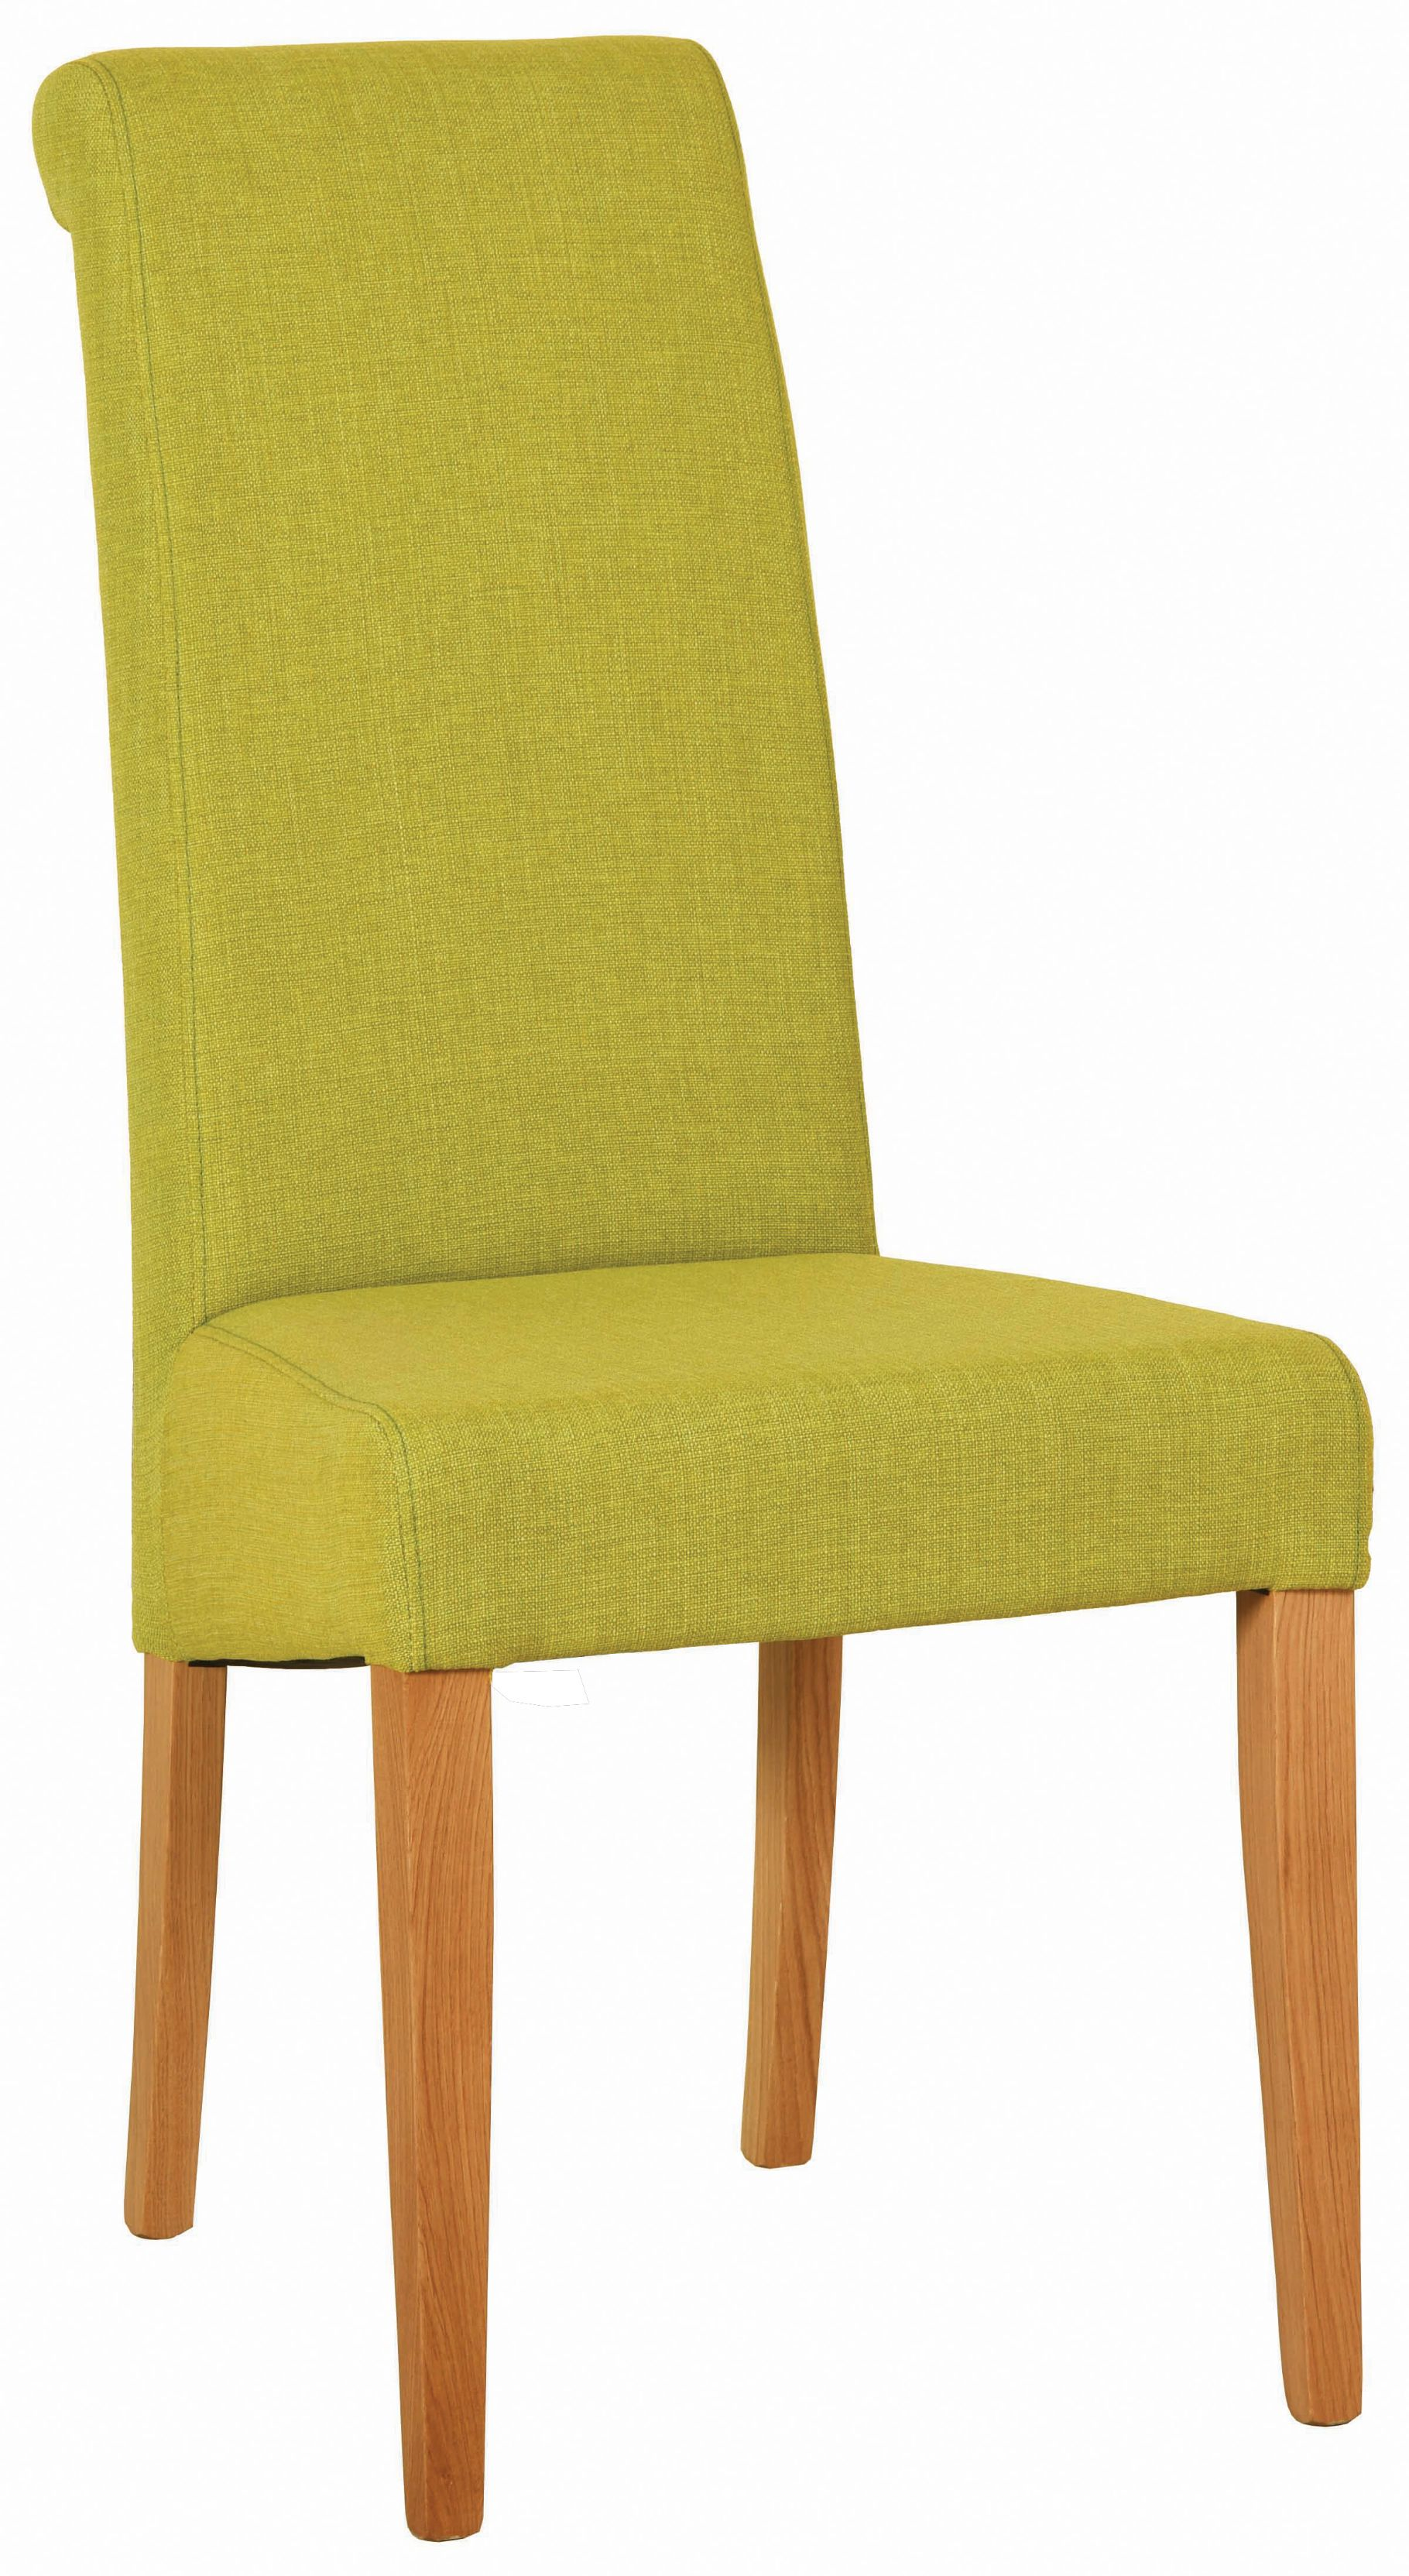 BEVERLEY OAK Lime Fabric Dining Chair